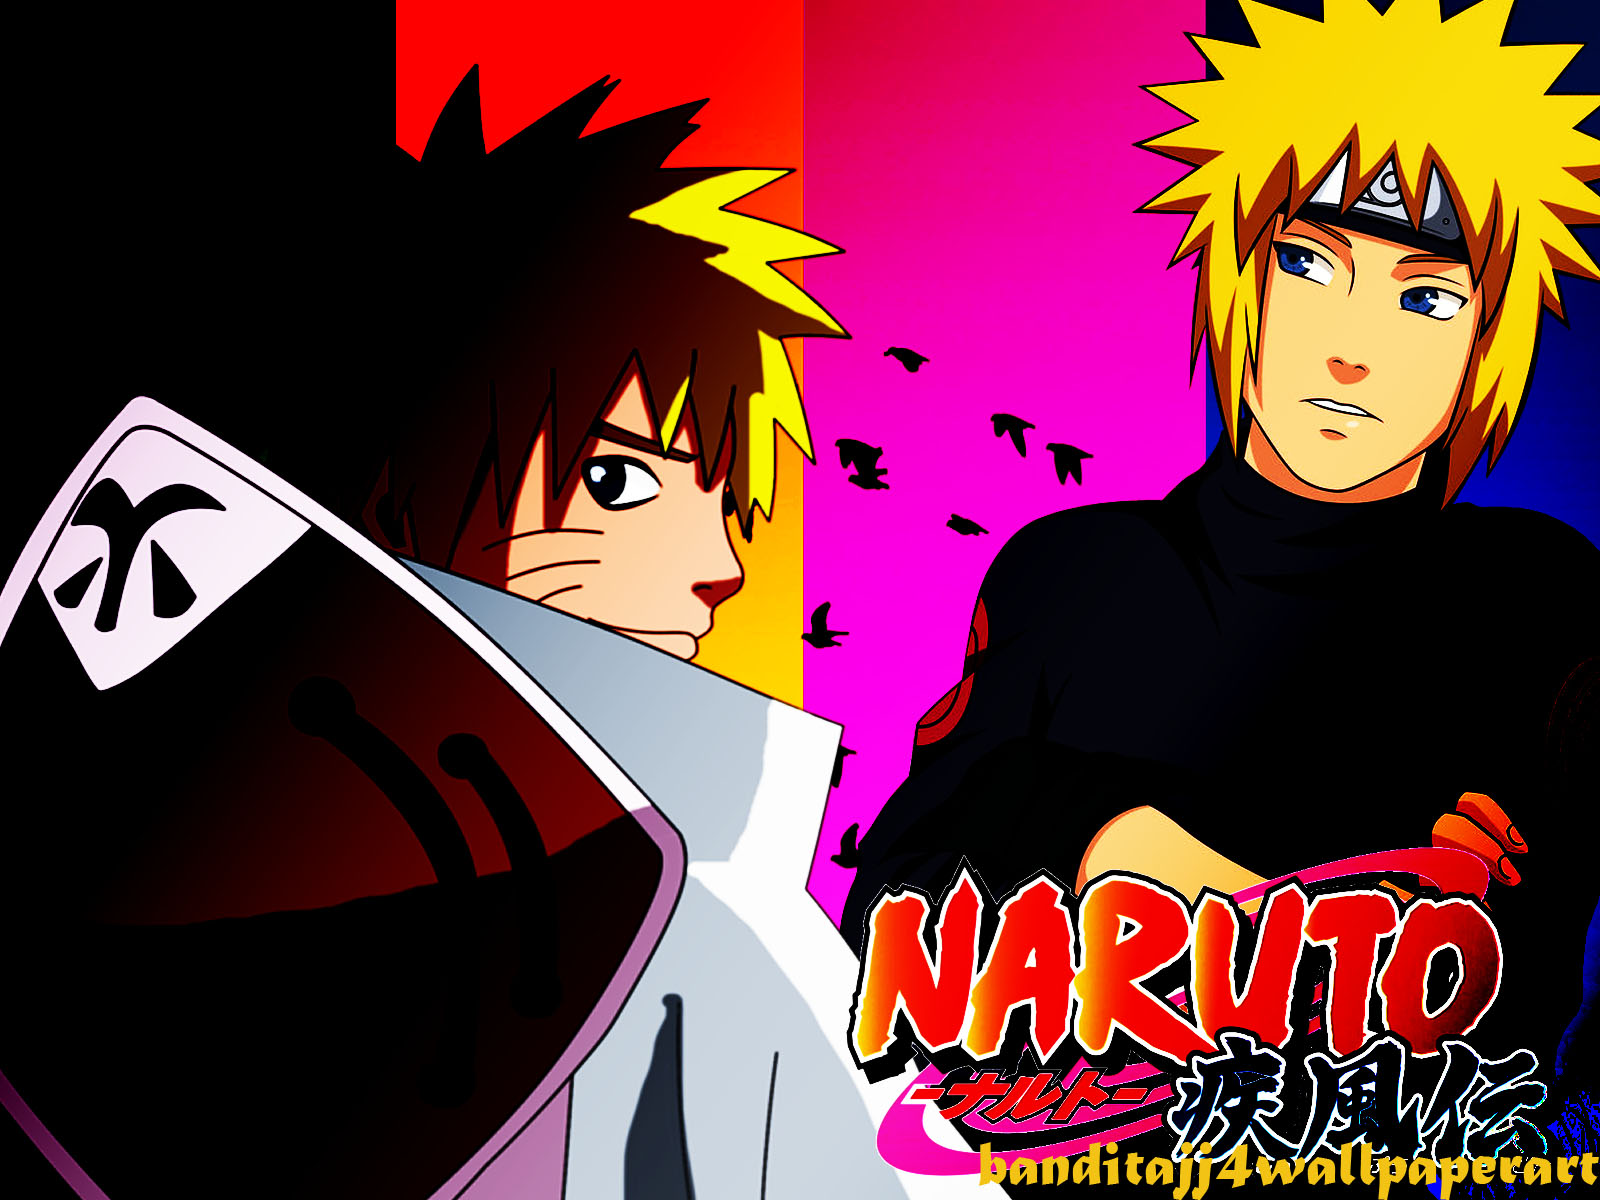 http://3.bp.blogspot.com/-w5vTXKEOge0/TrzDh4zZdwI/AAAAAAAAAqg/M4t666y4We4/s1600/Naruto-4th-hokage-wallpapers-1600x1200-by-banditajj4wallpaperartXXX.jpg